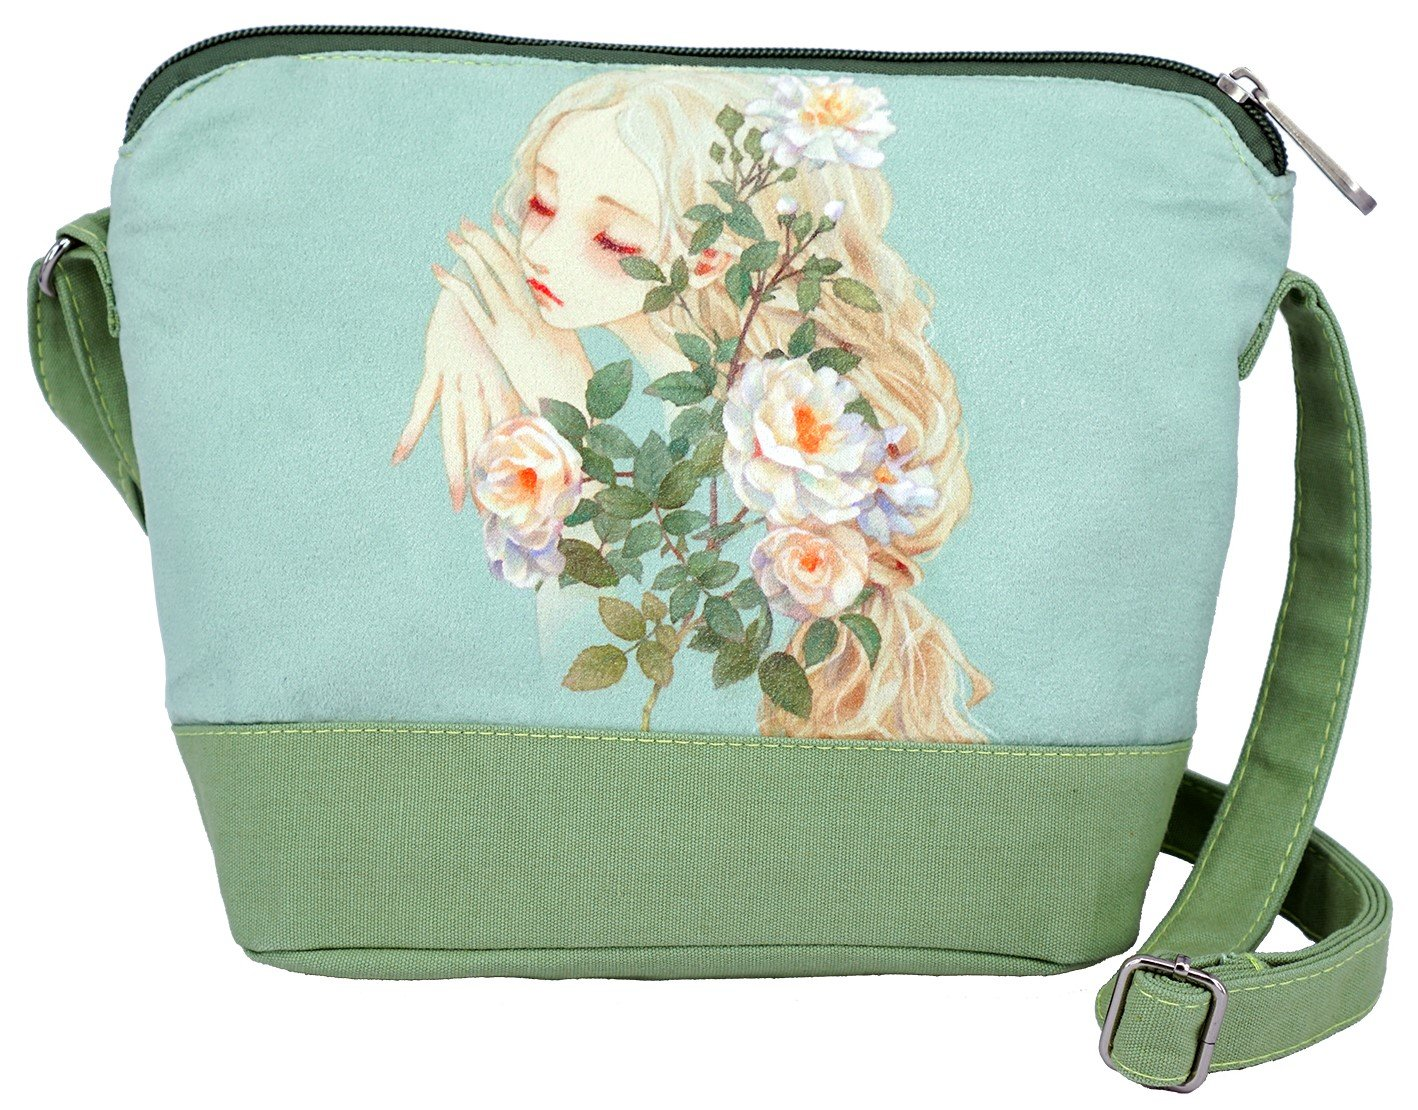 62afa86fb Buy Crest Design Cute Canvas Crossbody Bag Shoulder Bag Purse for Girl and  Teenage (Green) Online at Low Prices in India - Amazon.in